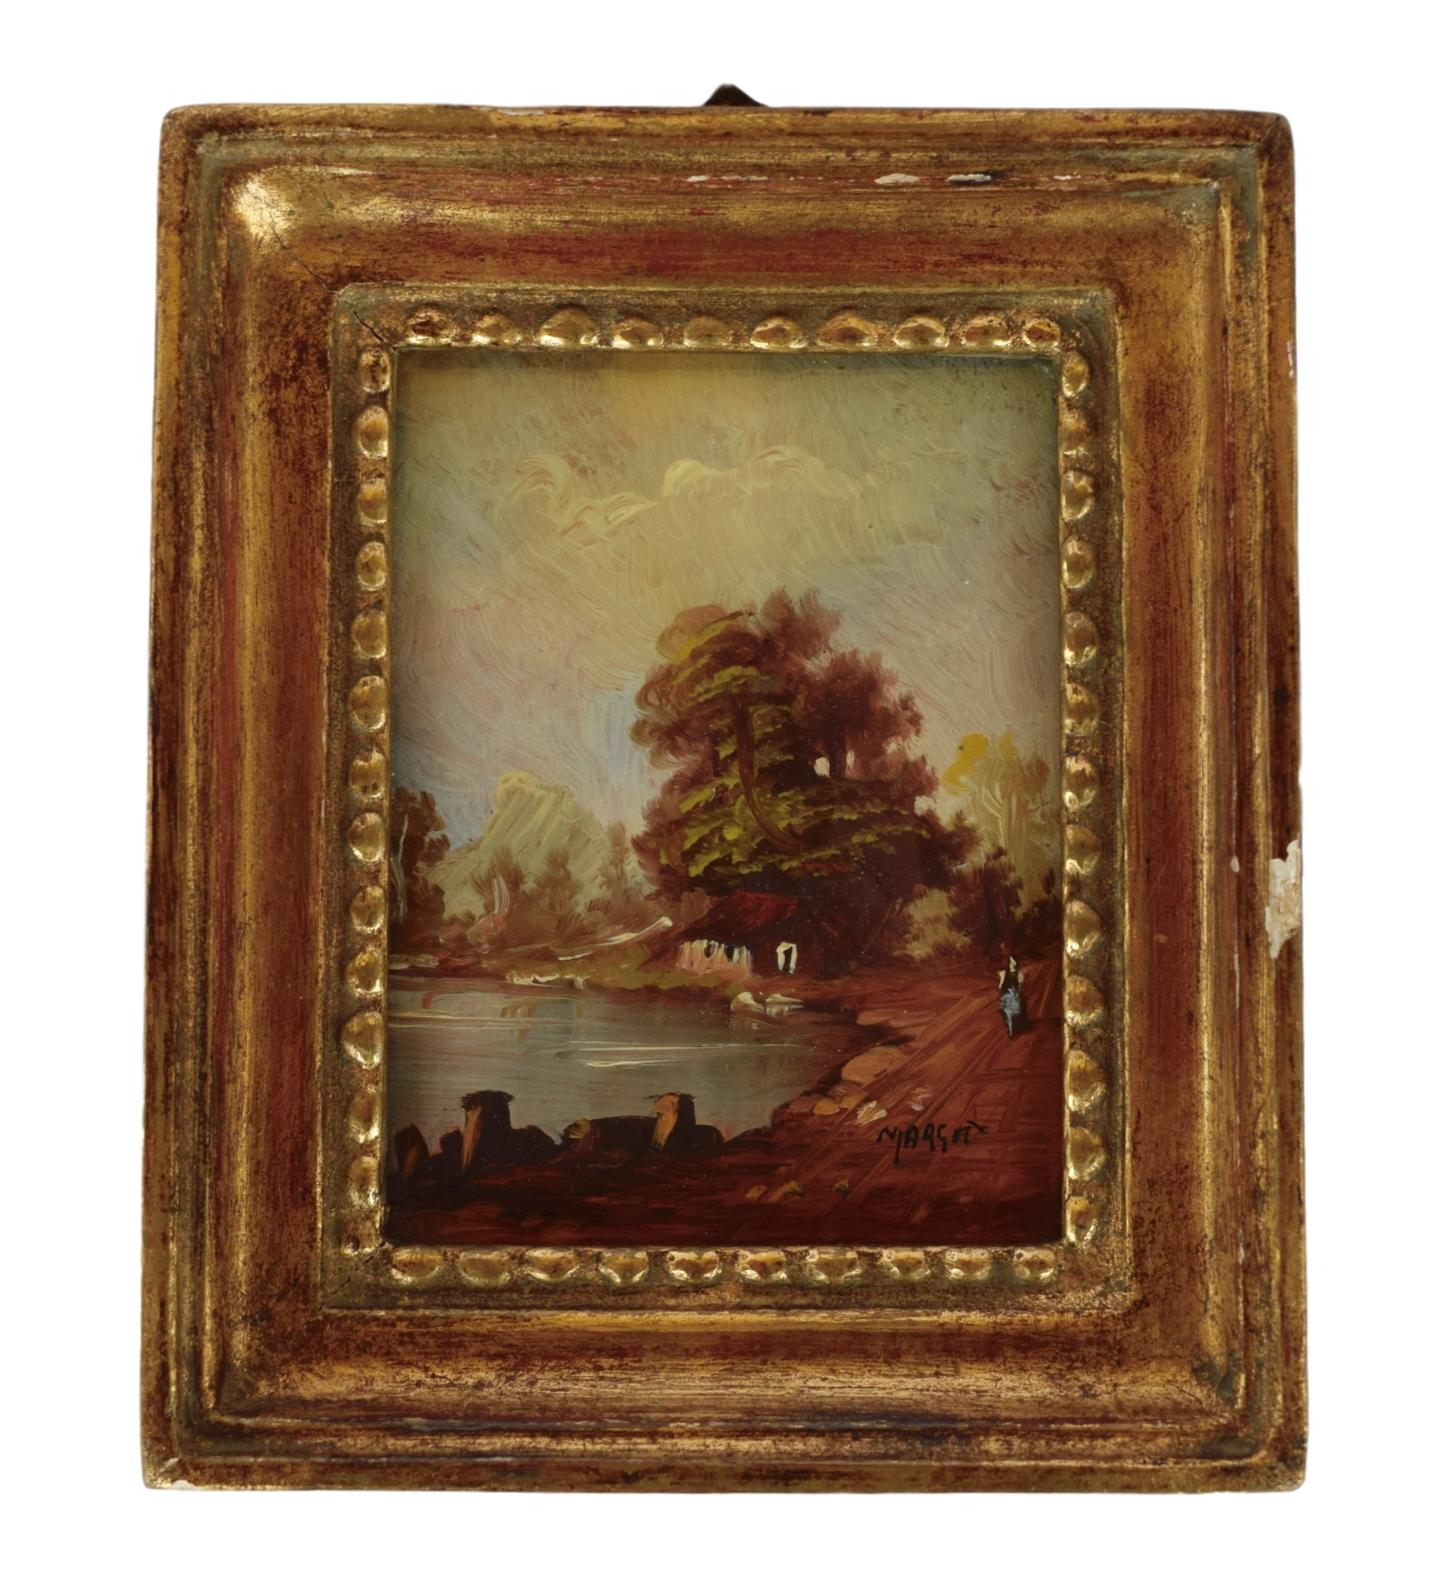 French Miniature Painting - Charmantiques